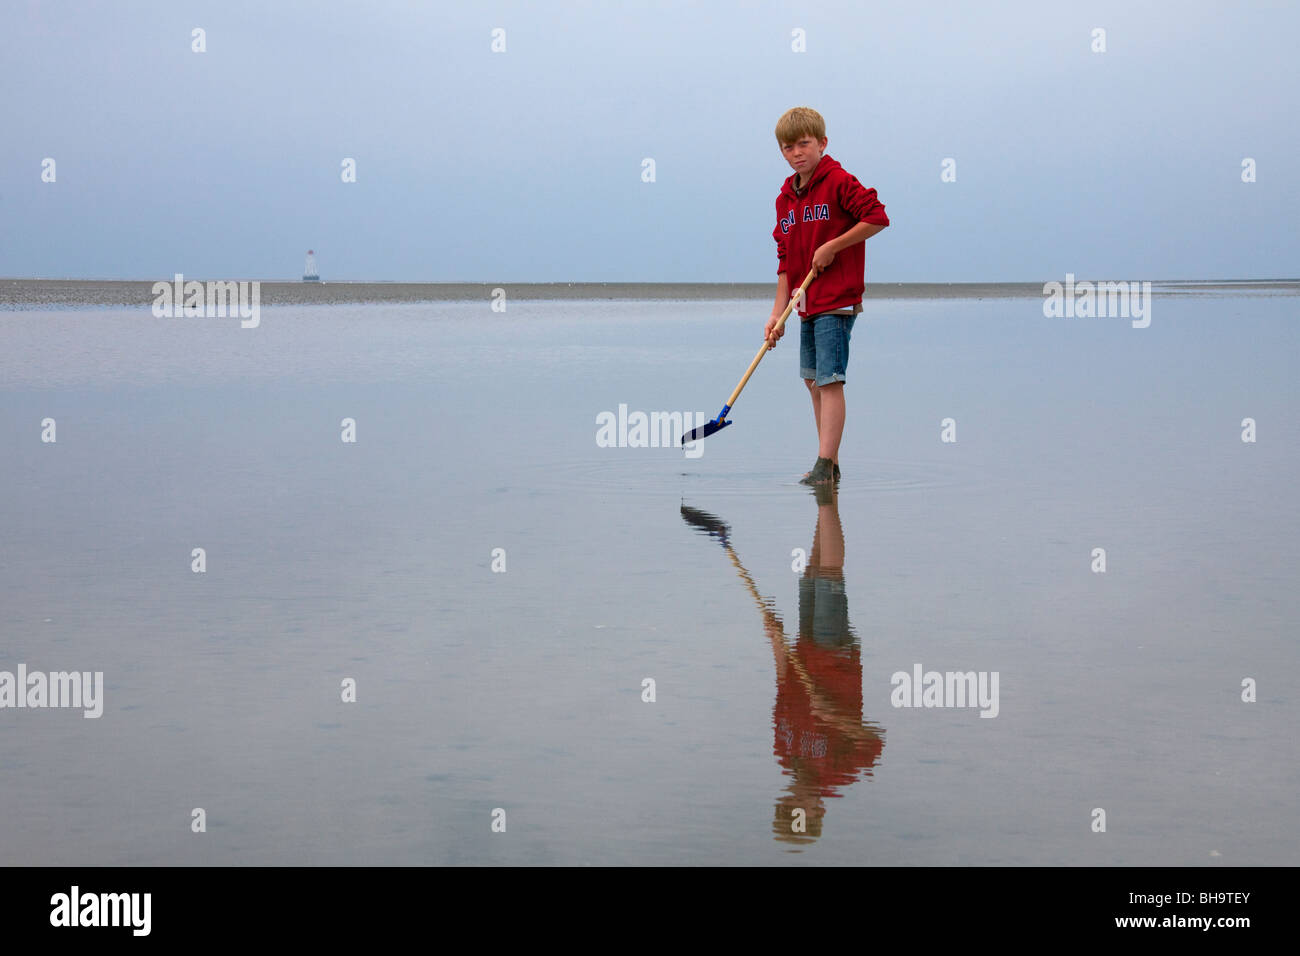 Boy with spade looking for worms on the beach at the Wadden Sea, Germany - Stock Image